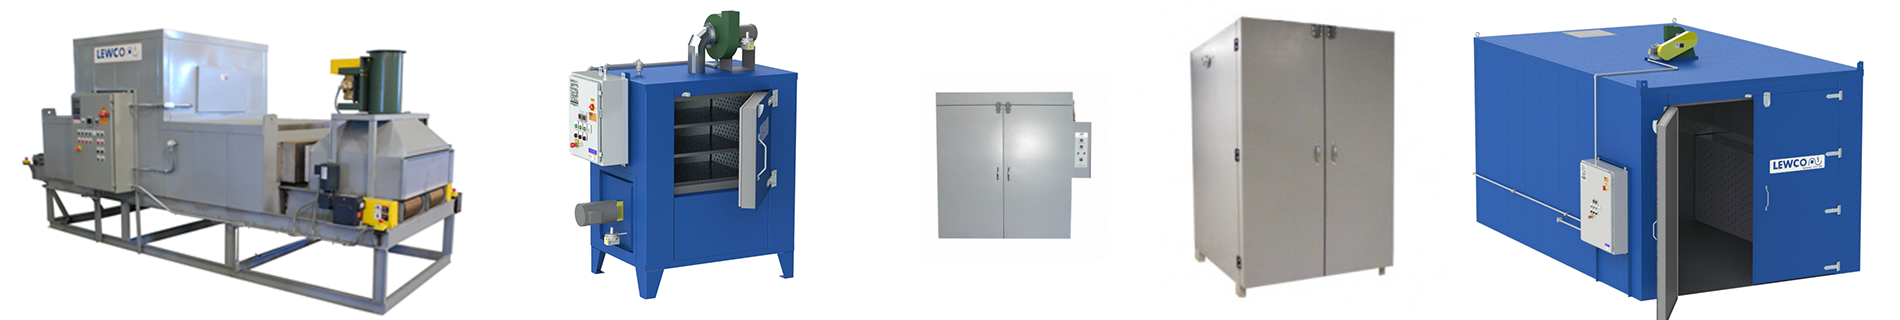 Oven Manufacturers banner